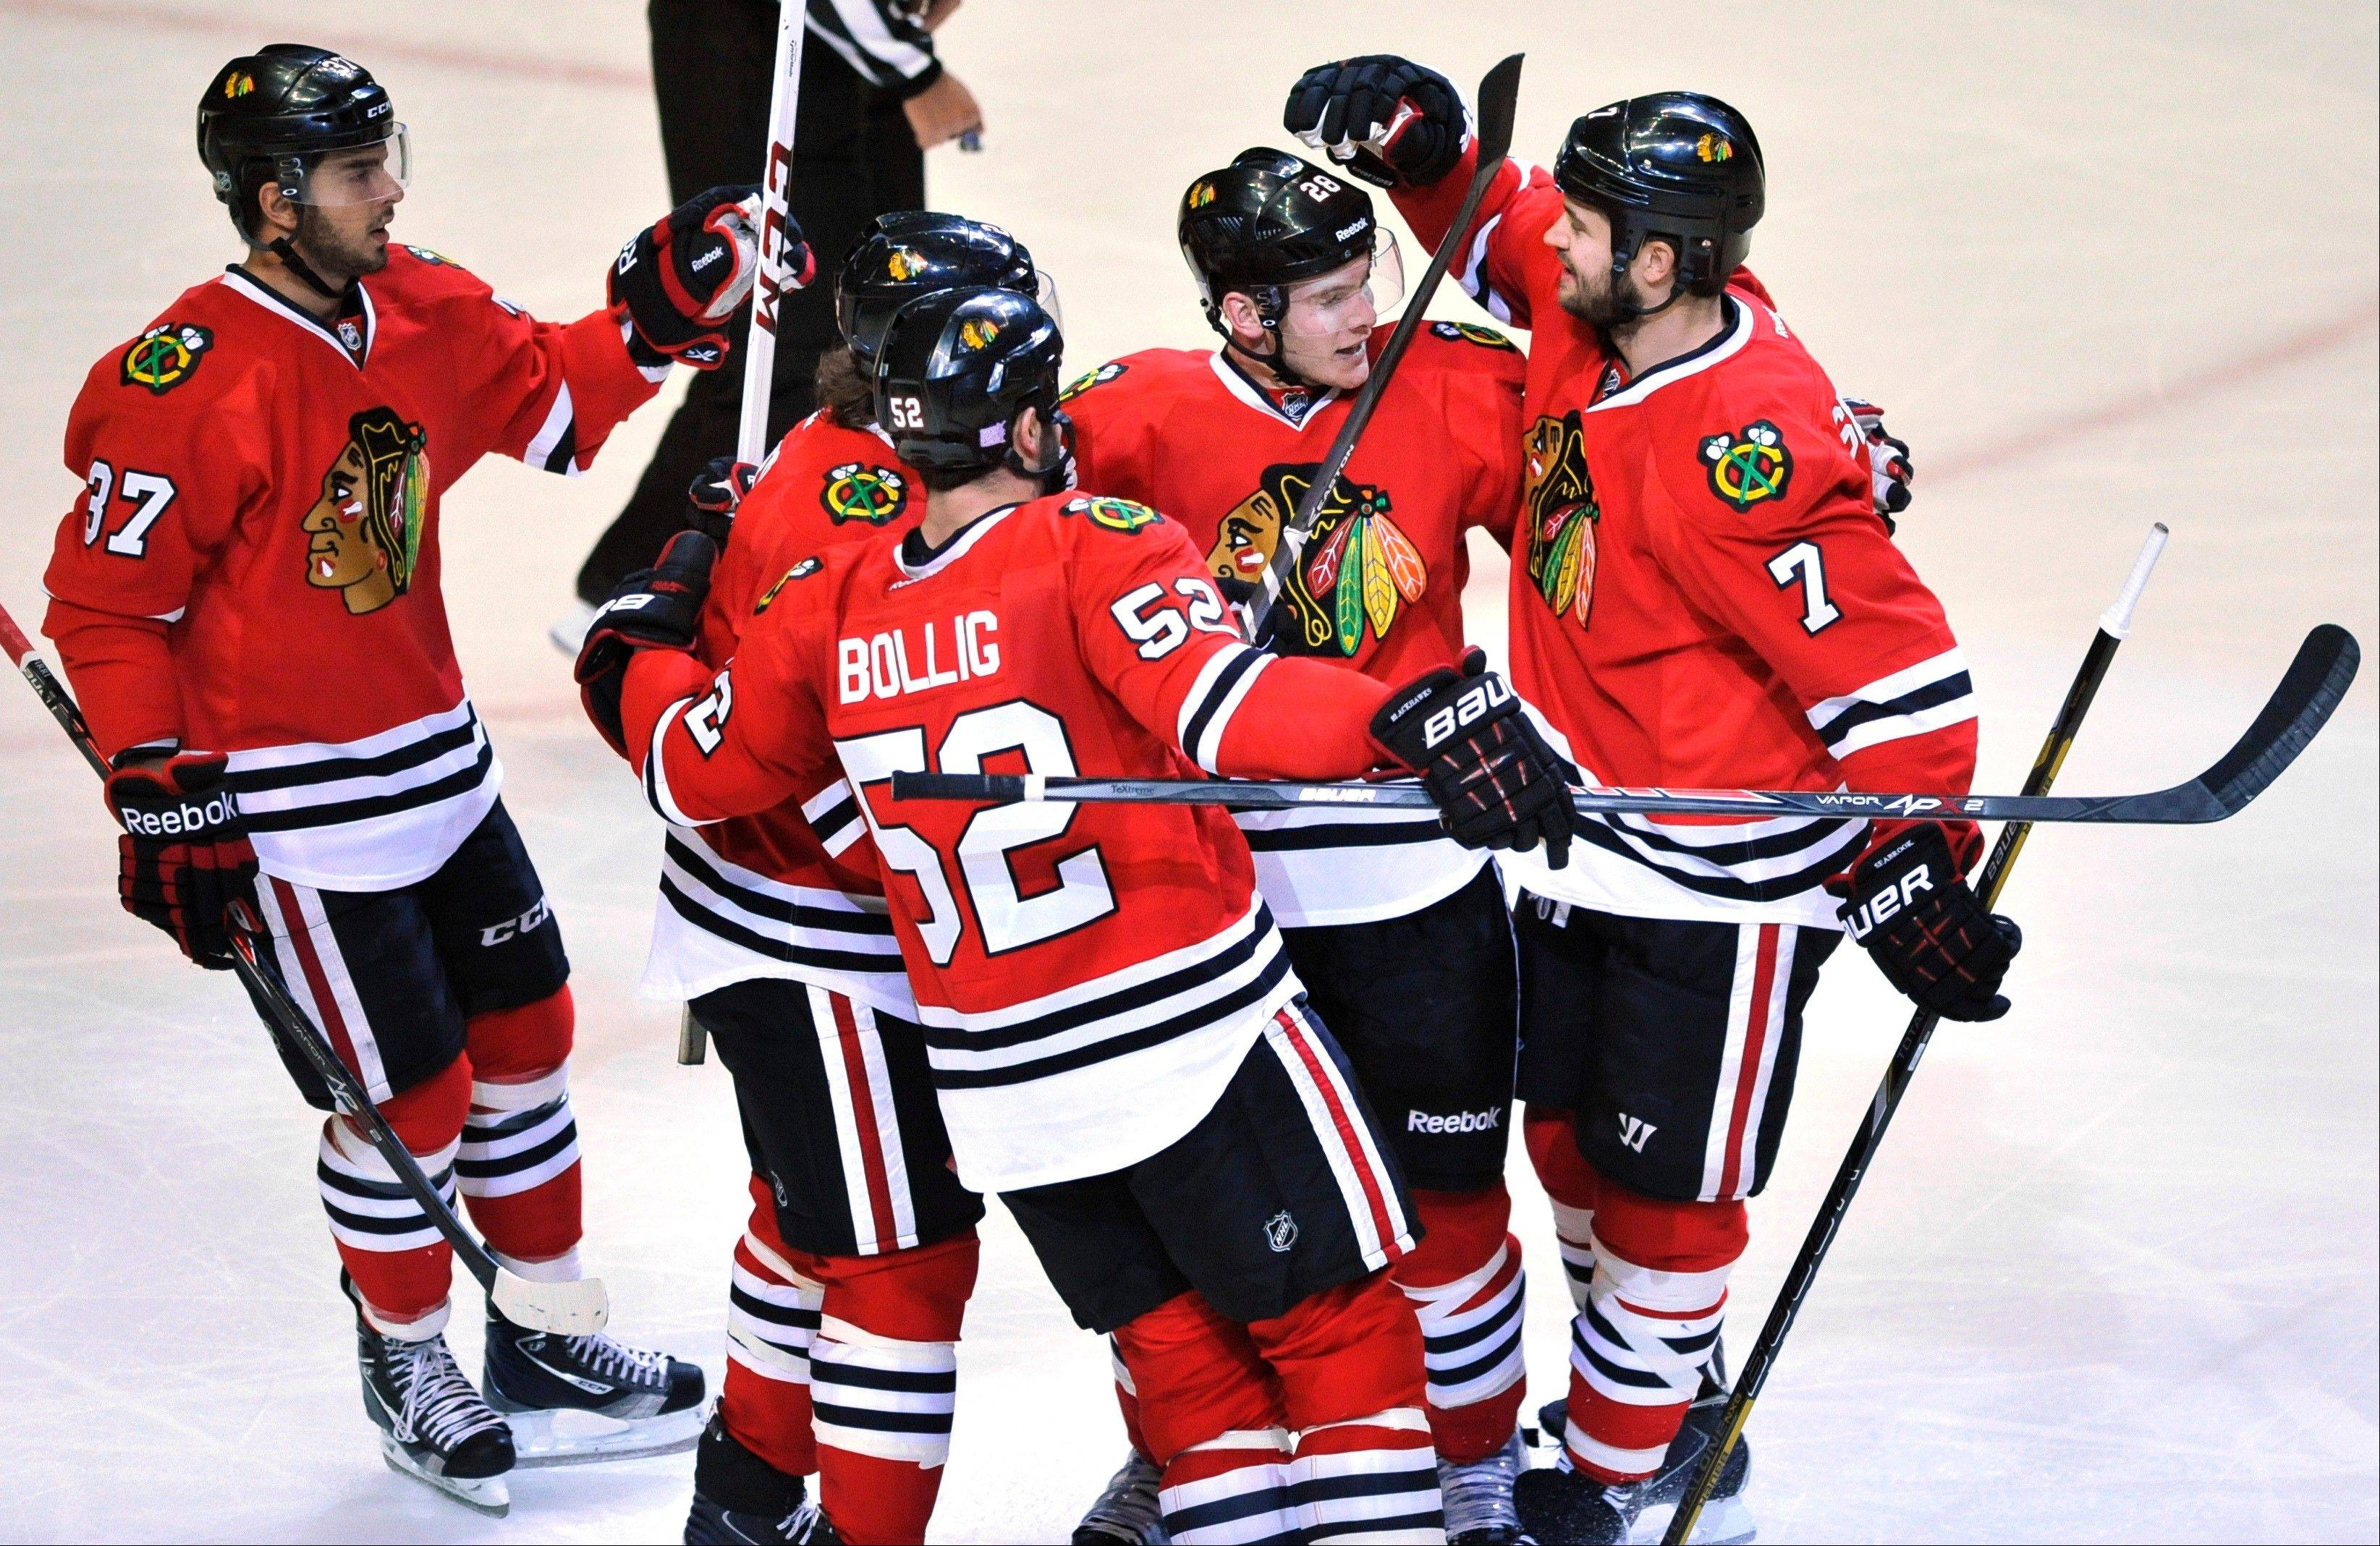 No easy victories yet for Hawks